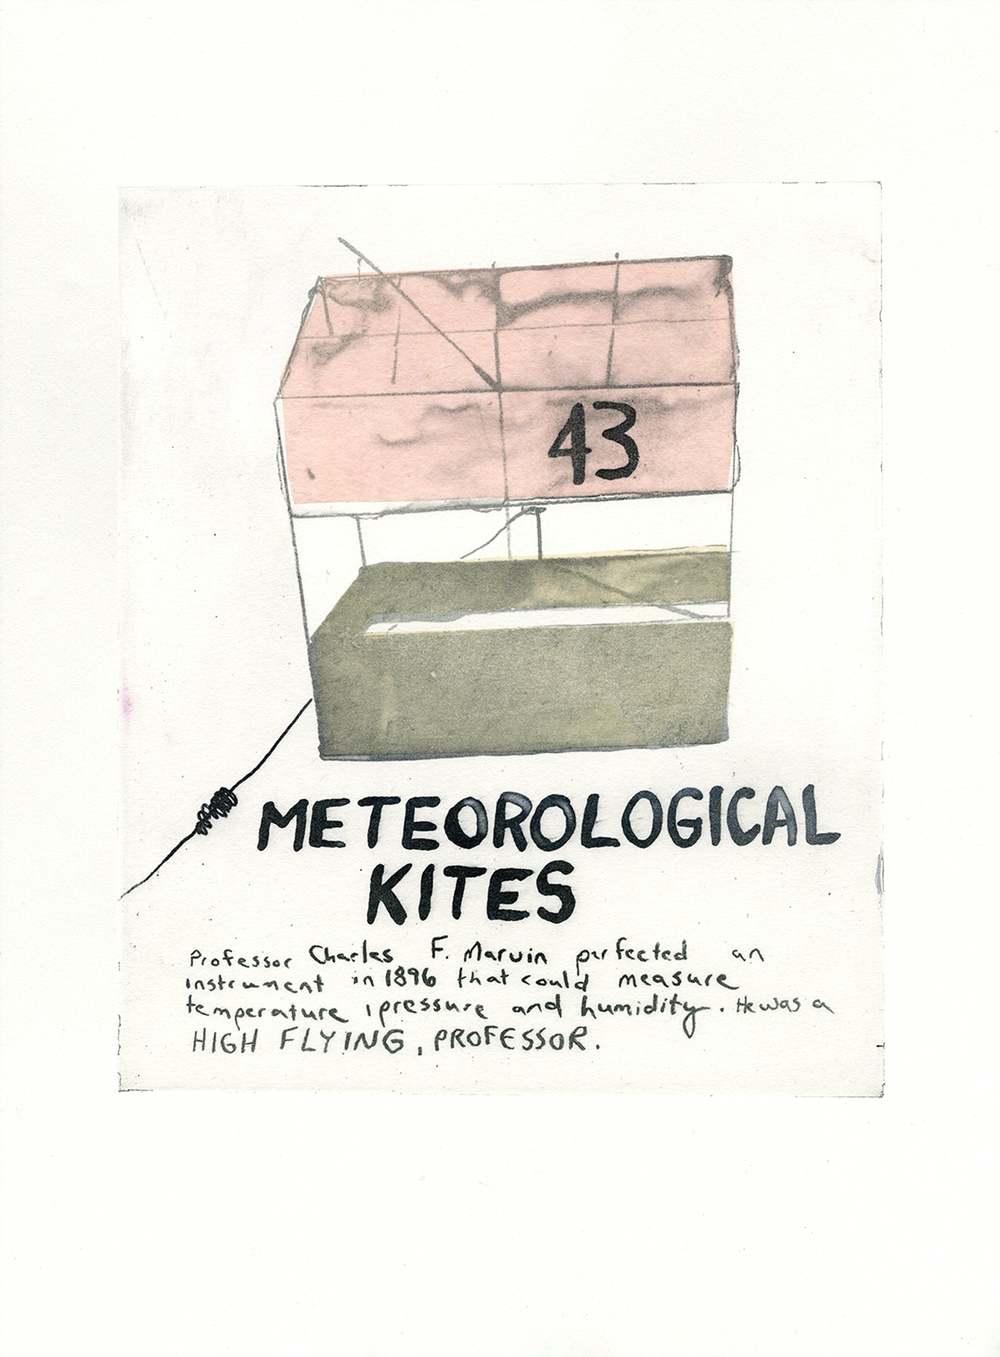 meterorological kites.jpg